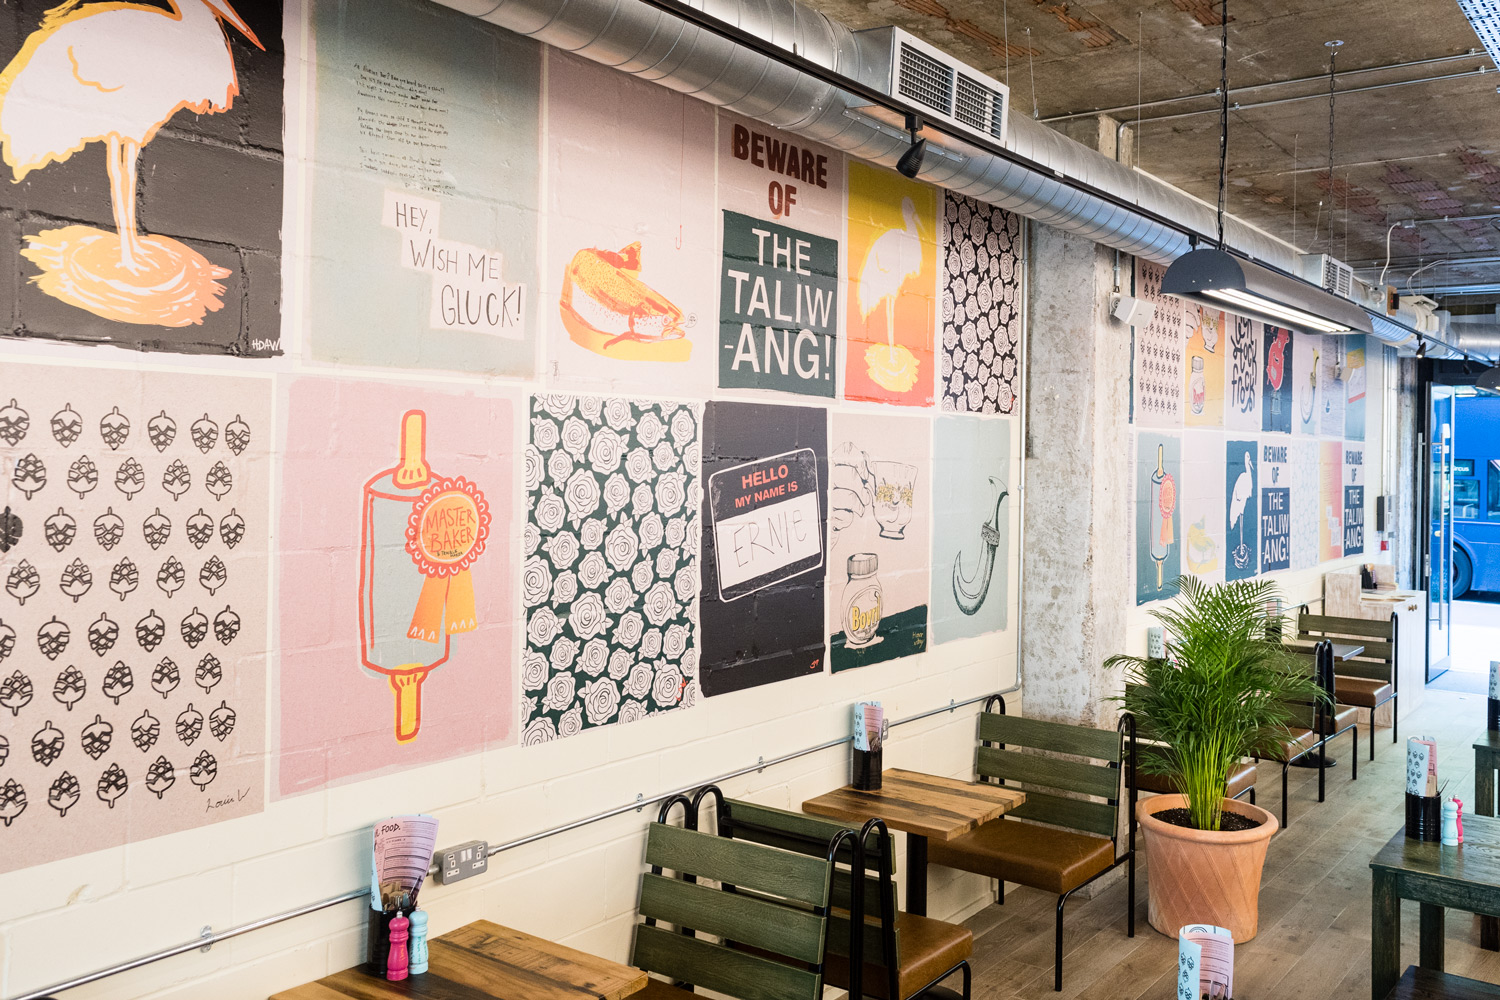 Interior shot of various illustrated fly posters across the wall in the Flamboree restaurant, illustrated by SAINT Design.